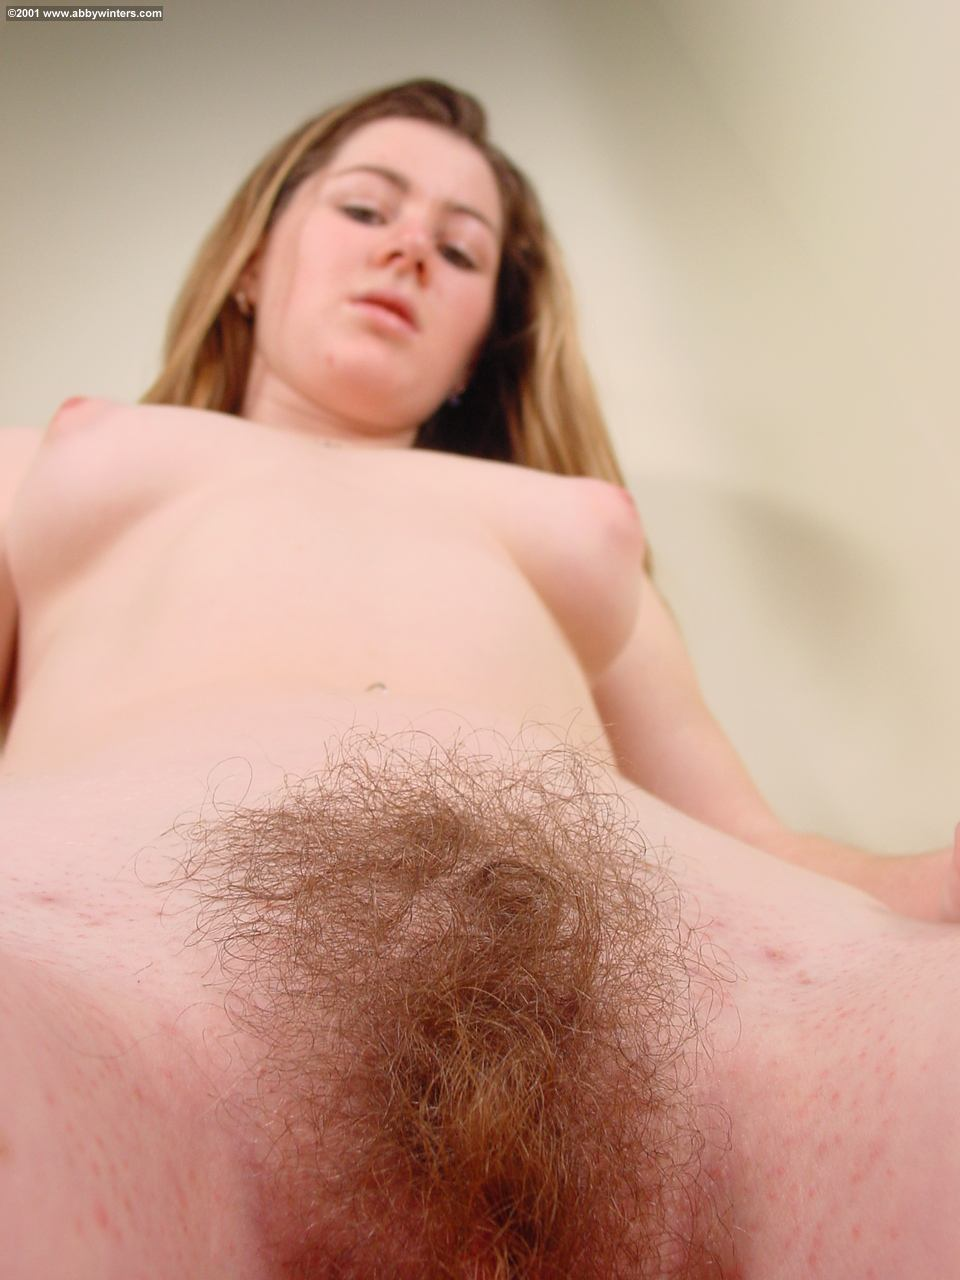 Not absolutely Hairy australian girls porn think, that